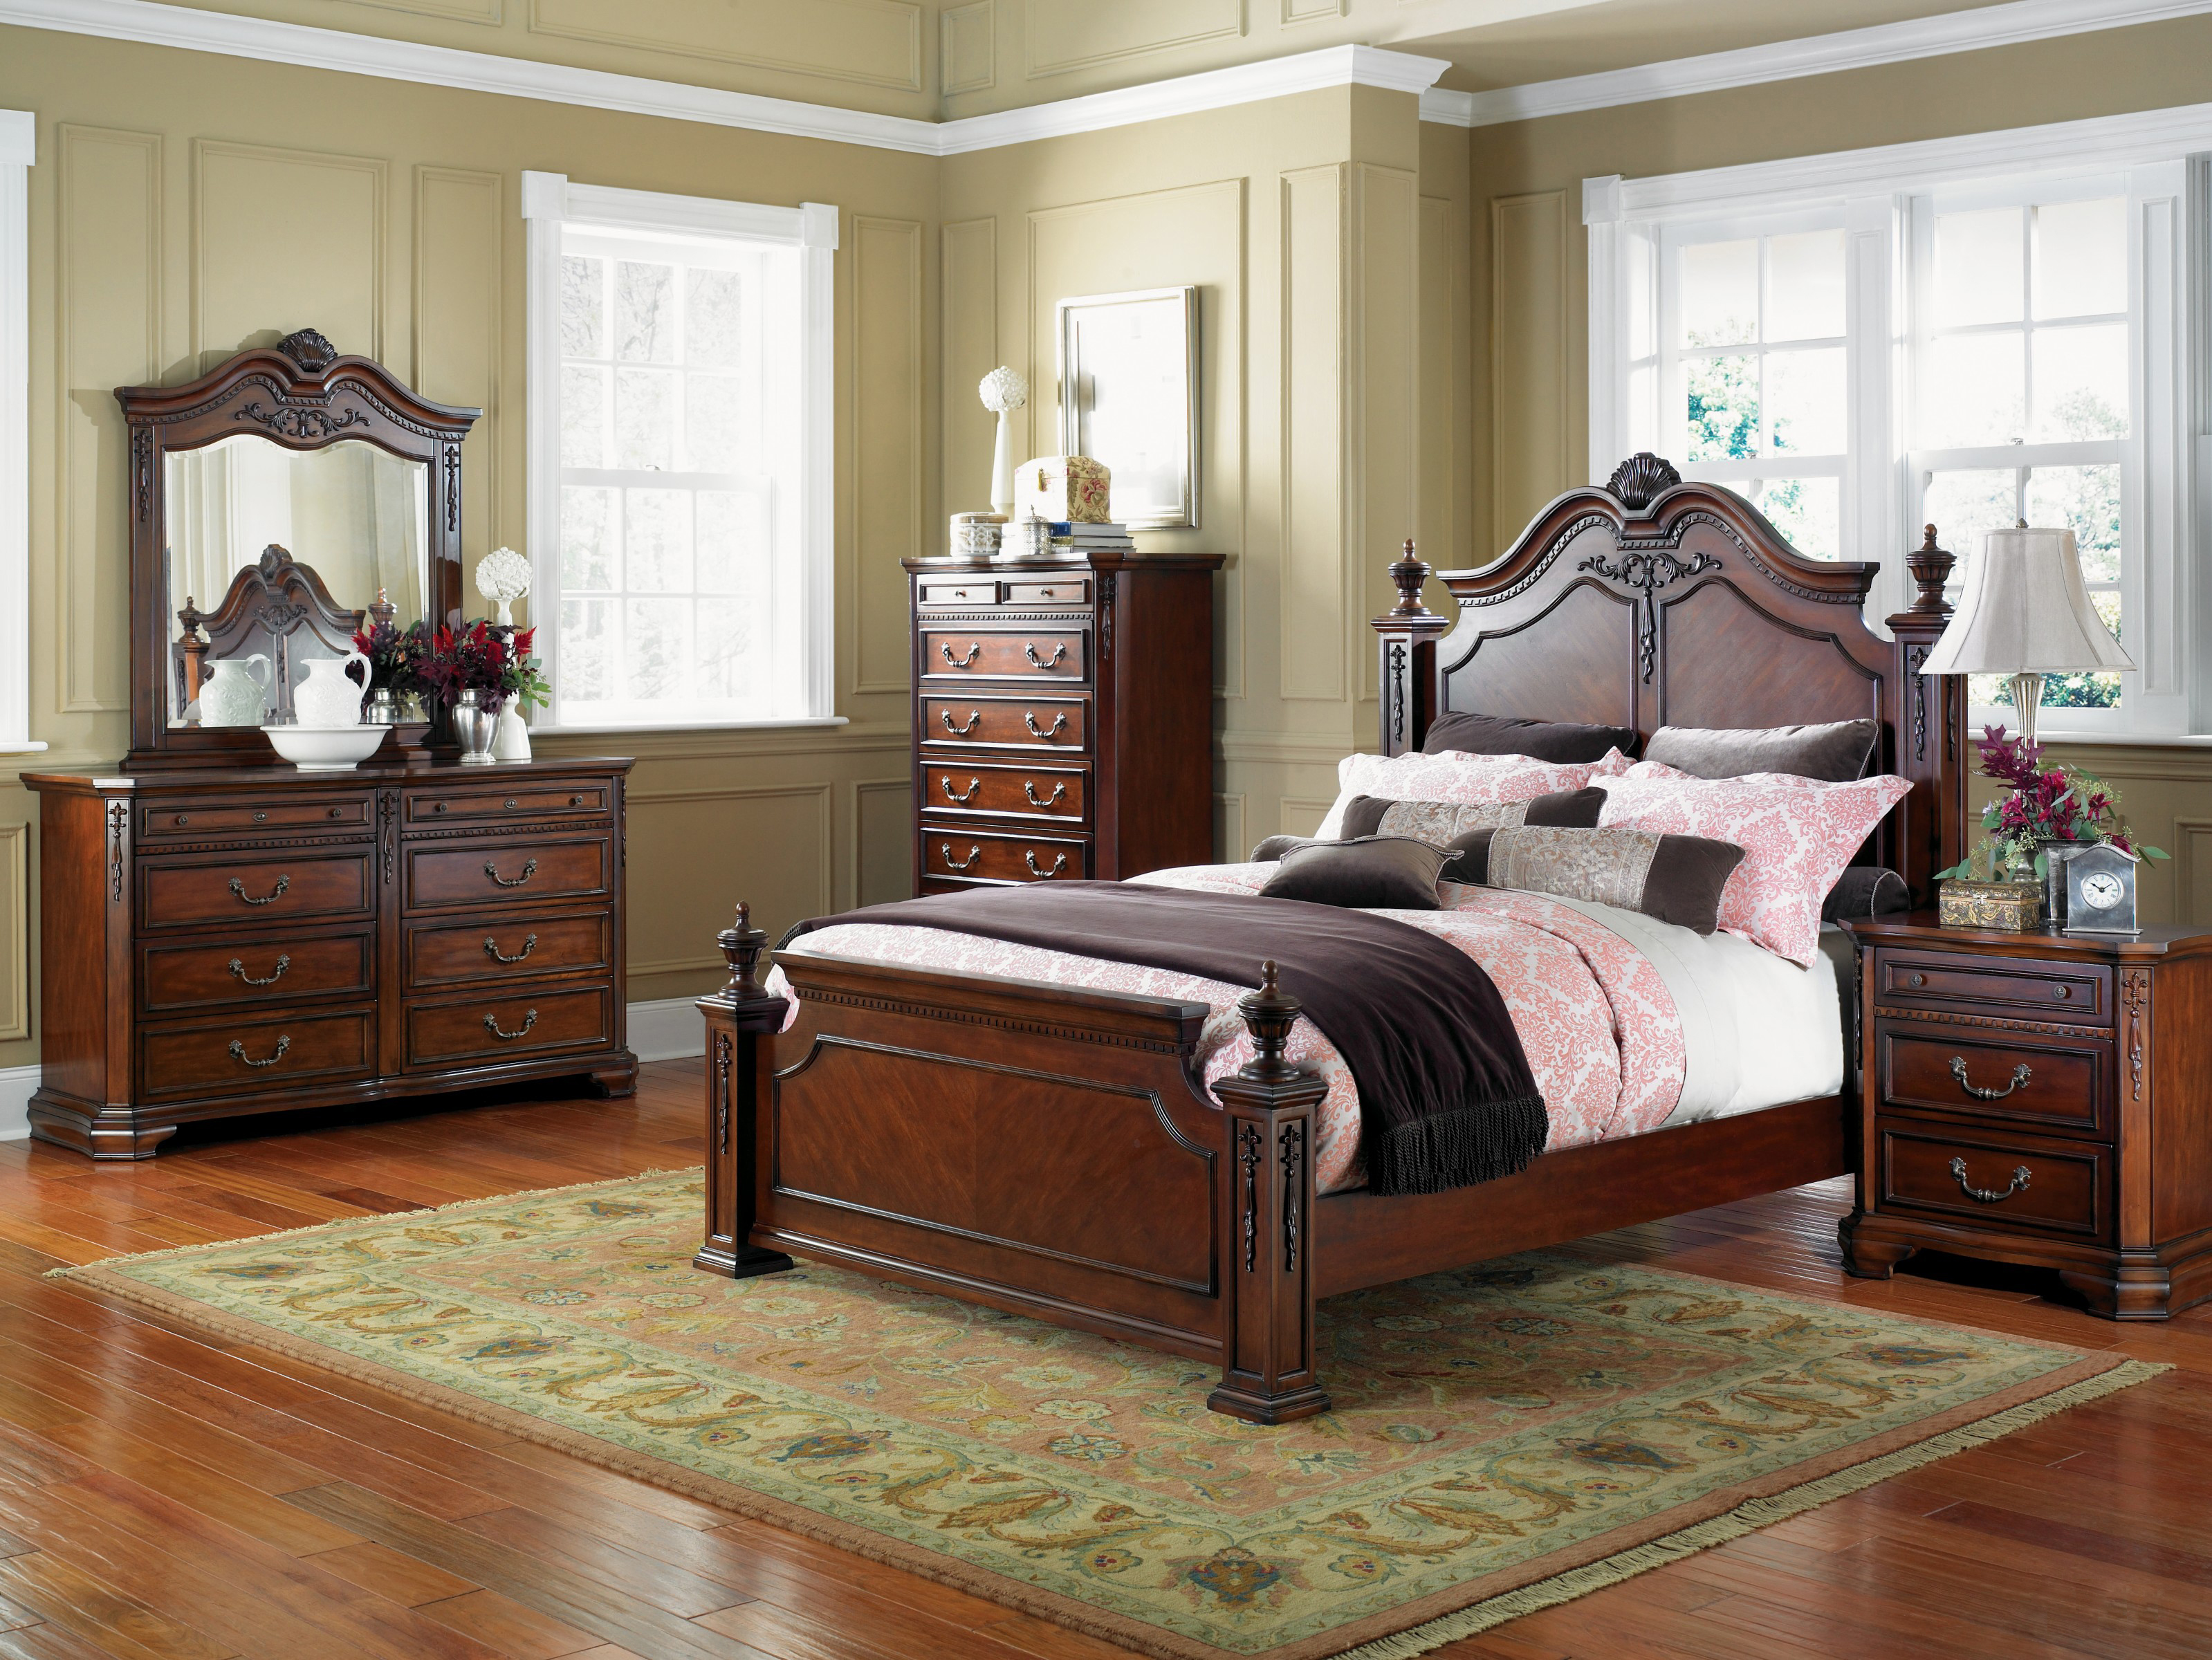 Excelsior Bedroom Furniture Set Collection - Request a FREE Quote